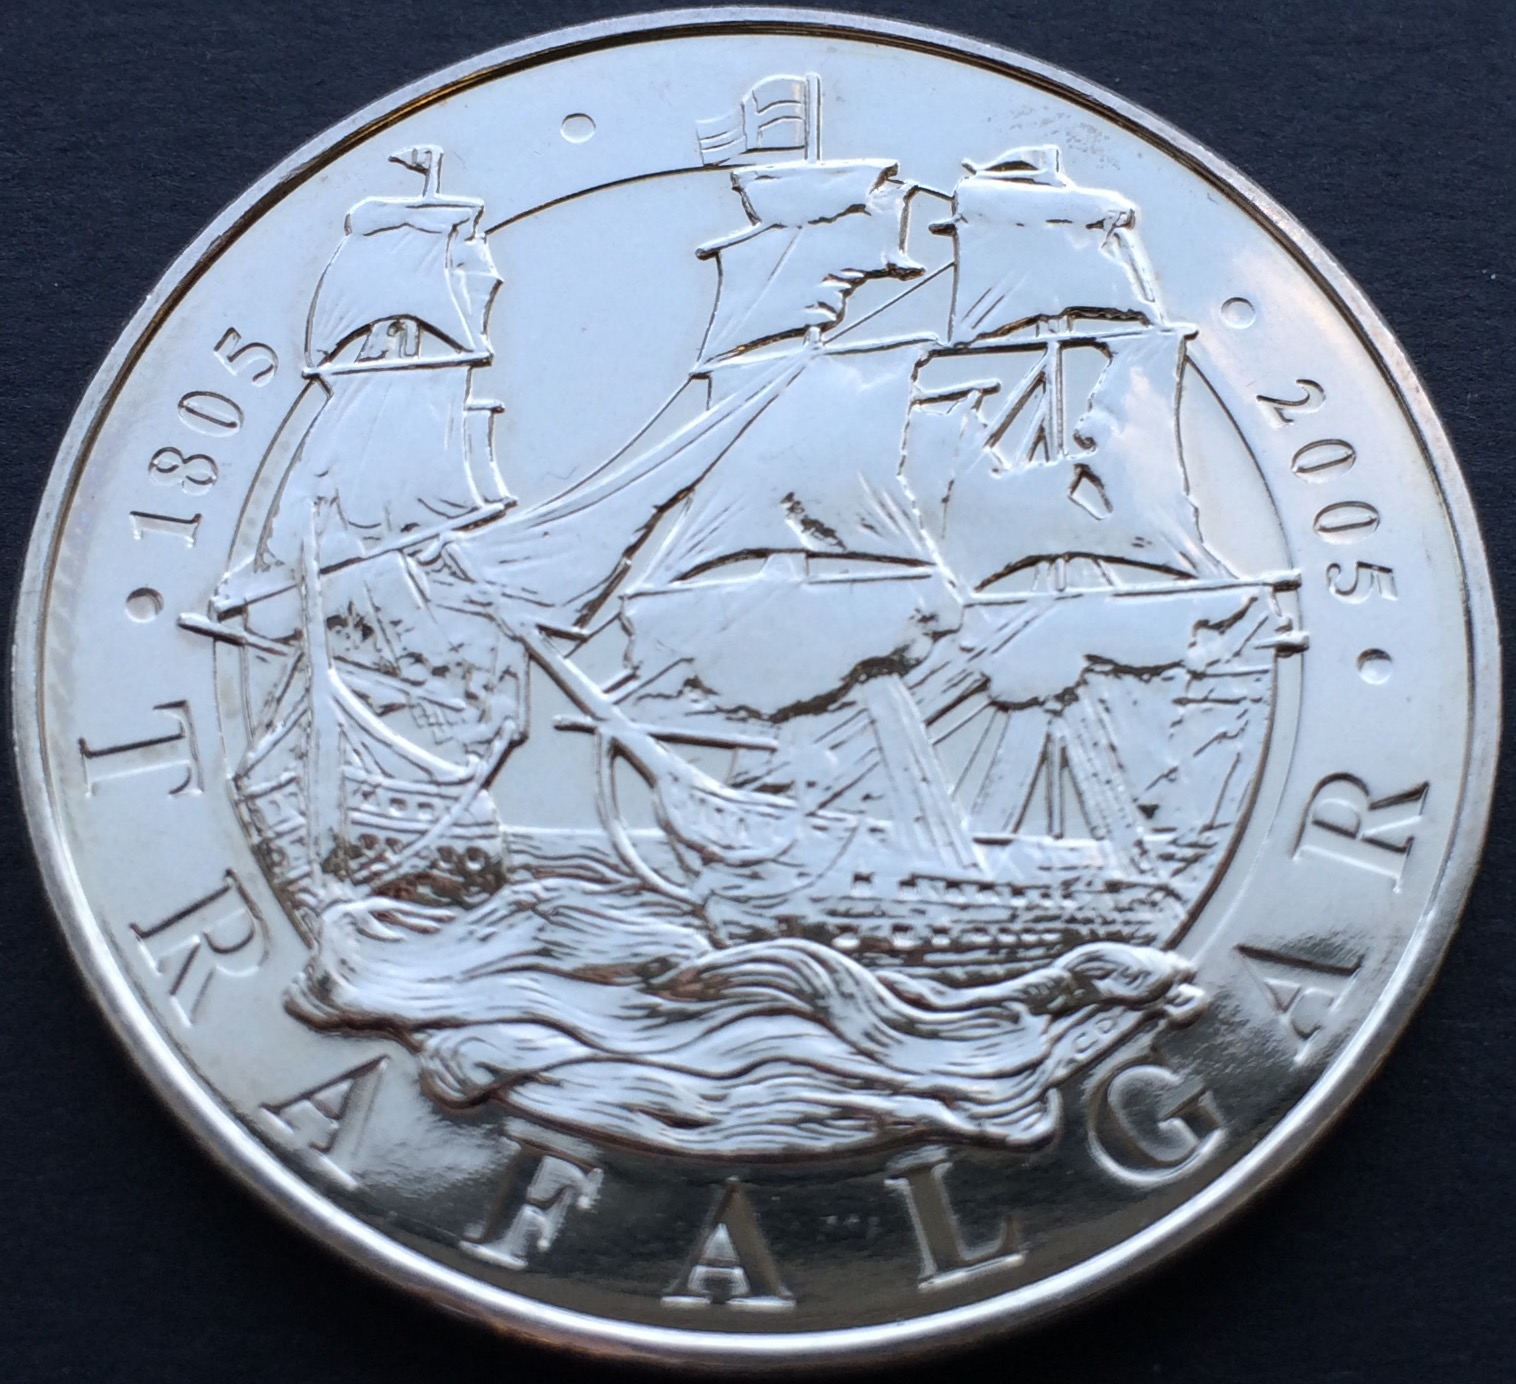 trafalgar - £5 Coins - My top 5 designs